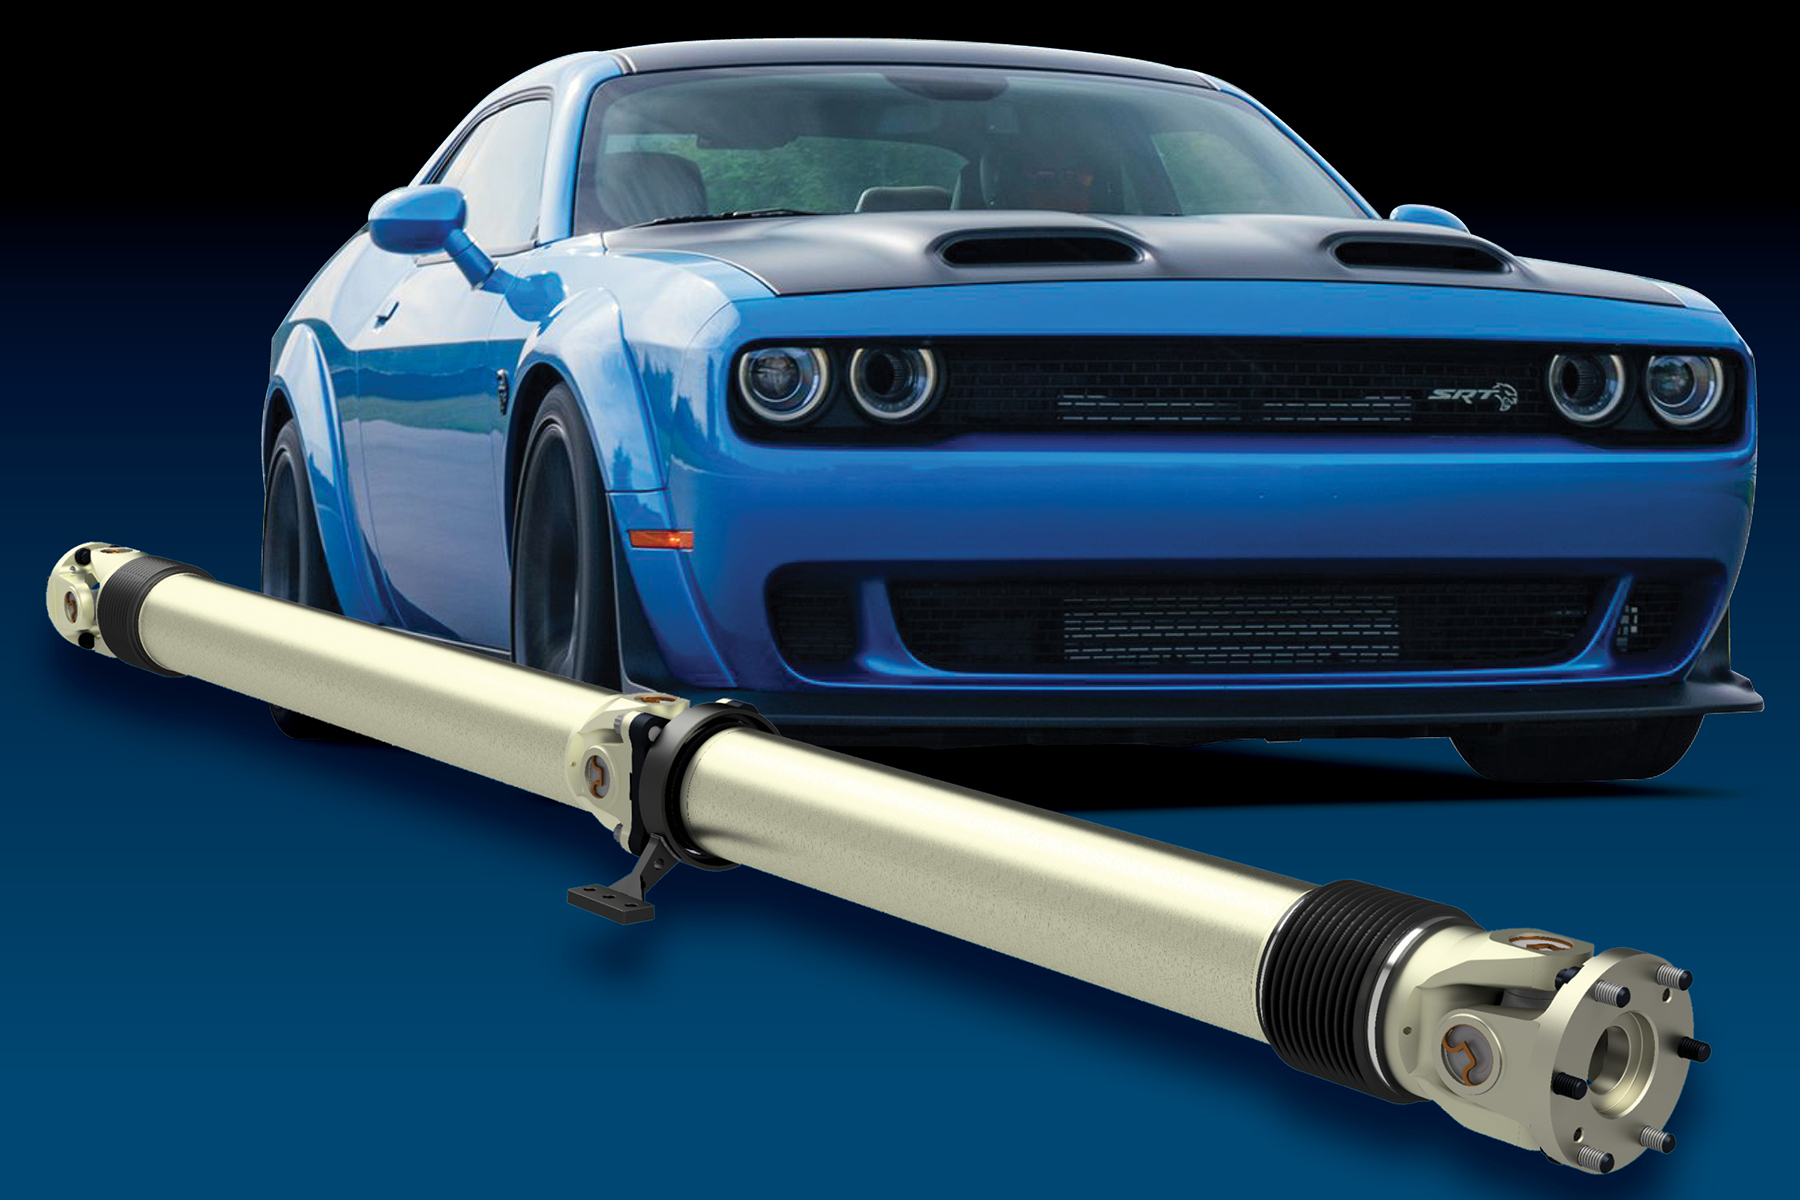 Mark Williams Announces Hellcat Driveshafts In Both Carbon Fiber And Aluminum, Rated For Way Bigger Power And Much Higher RPM